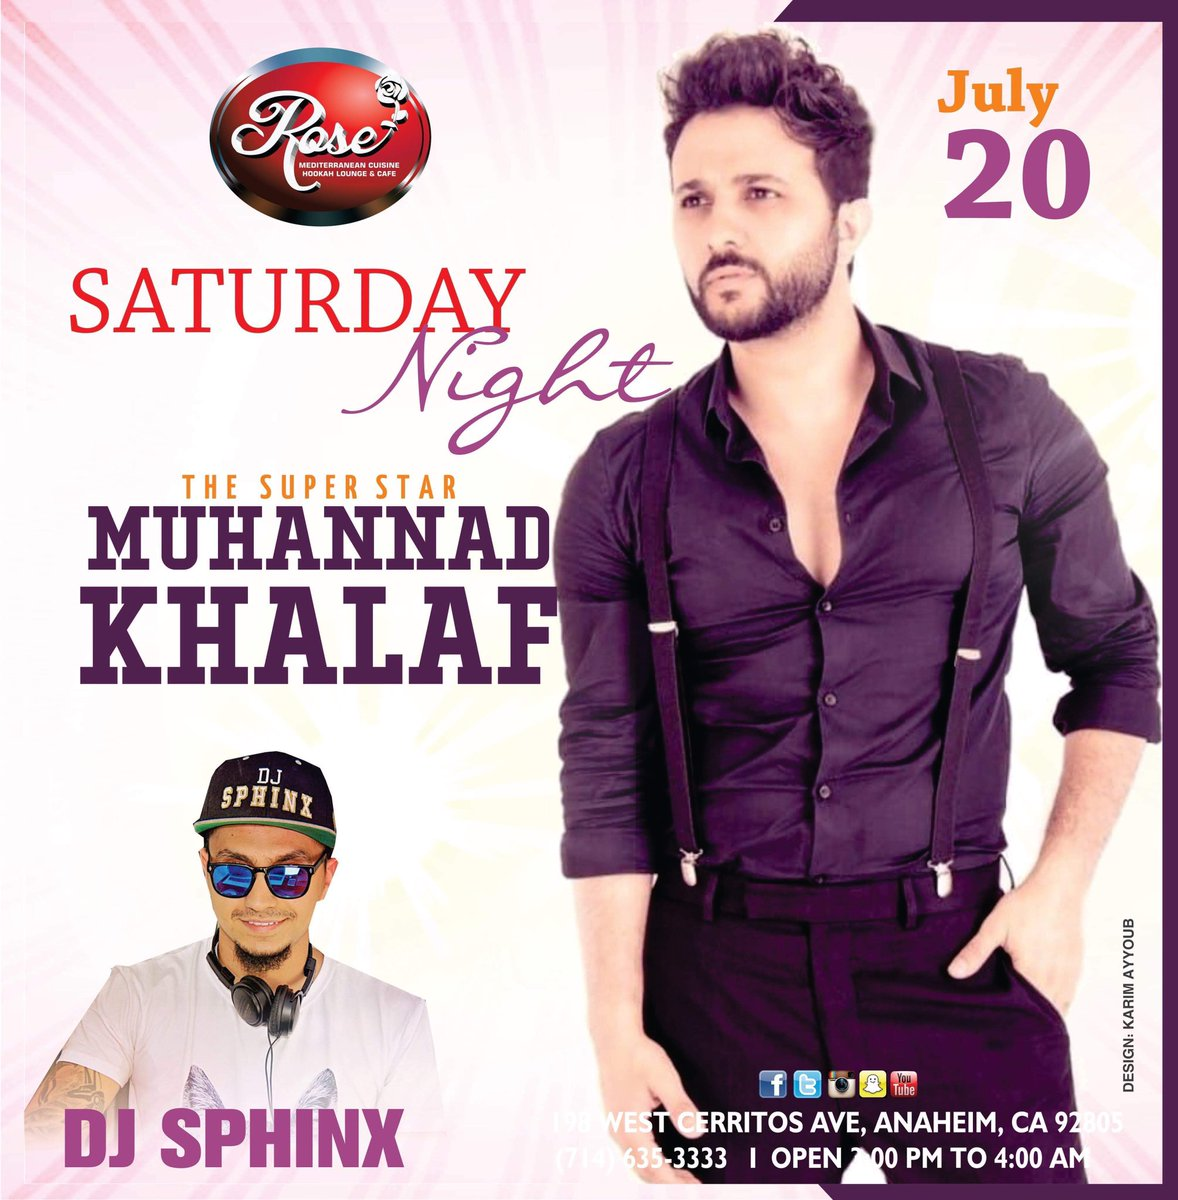 test Twitter Media - Come spend this Saturday Night with the Super Star Muhannad Khalaf🎤🎤, DJ Sphinx 🎧 and beautiful belly dancing 💃💃💃show !!  Because we love 😍 our customers we only bring you the best entertainment !!  RSVP 714-635-3333!! @ssa_csula @where2go_mag @Rosecafehookah https://t.co/A20L2arD8s